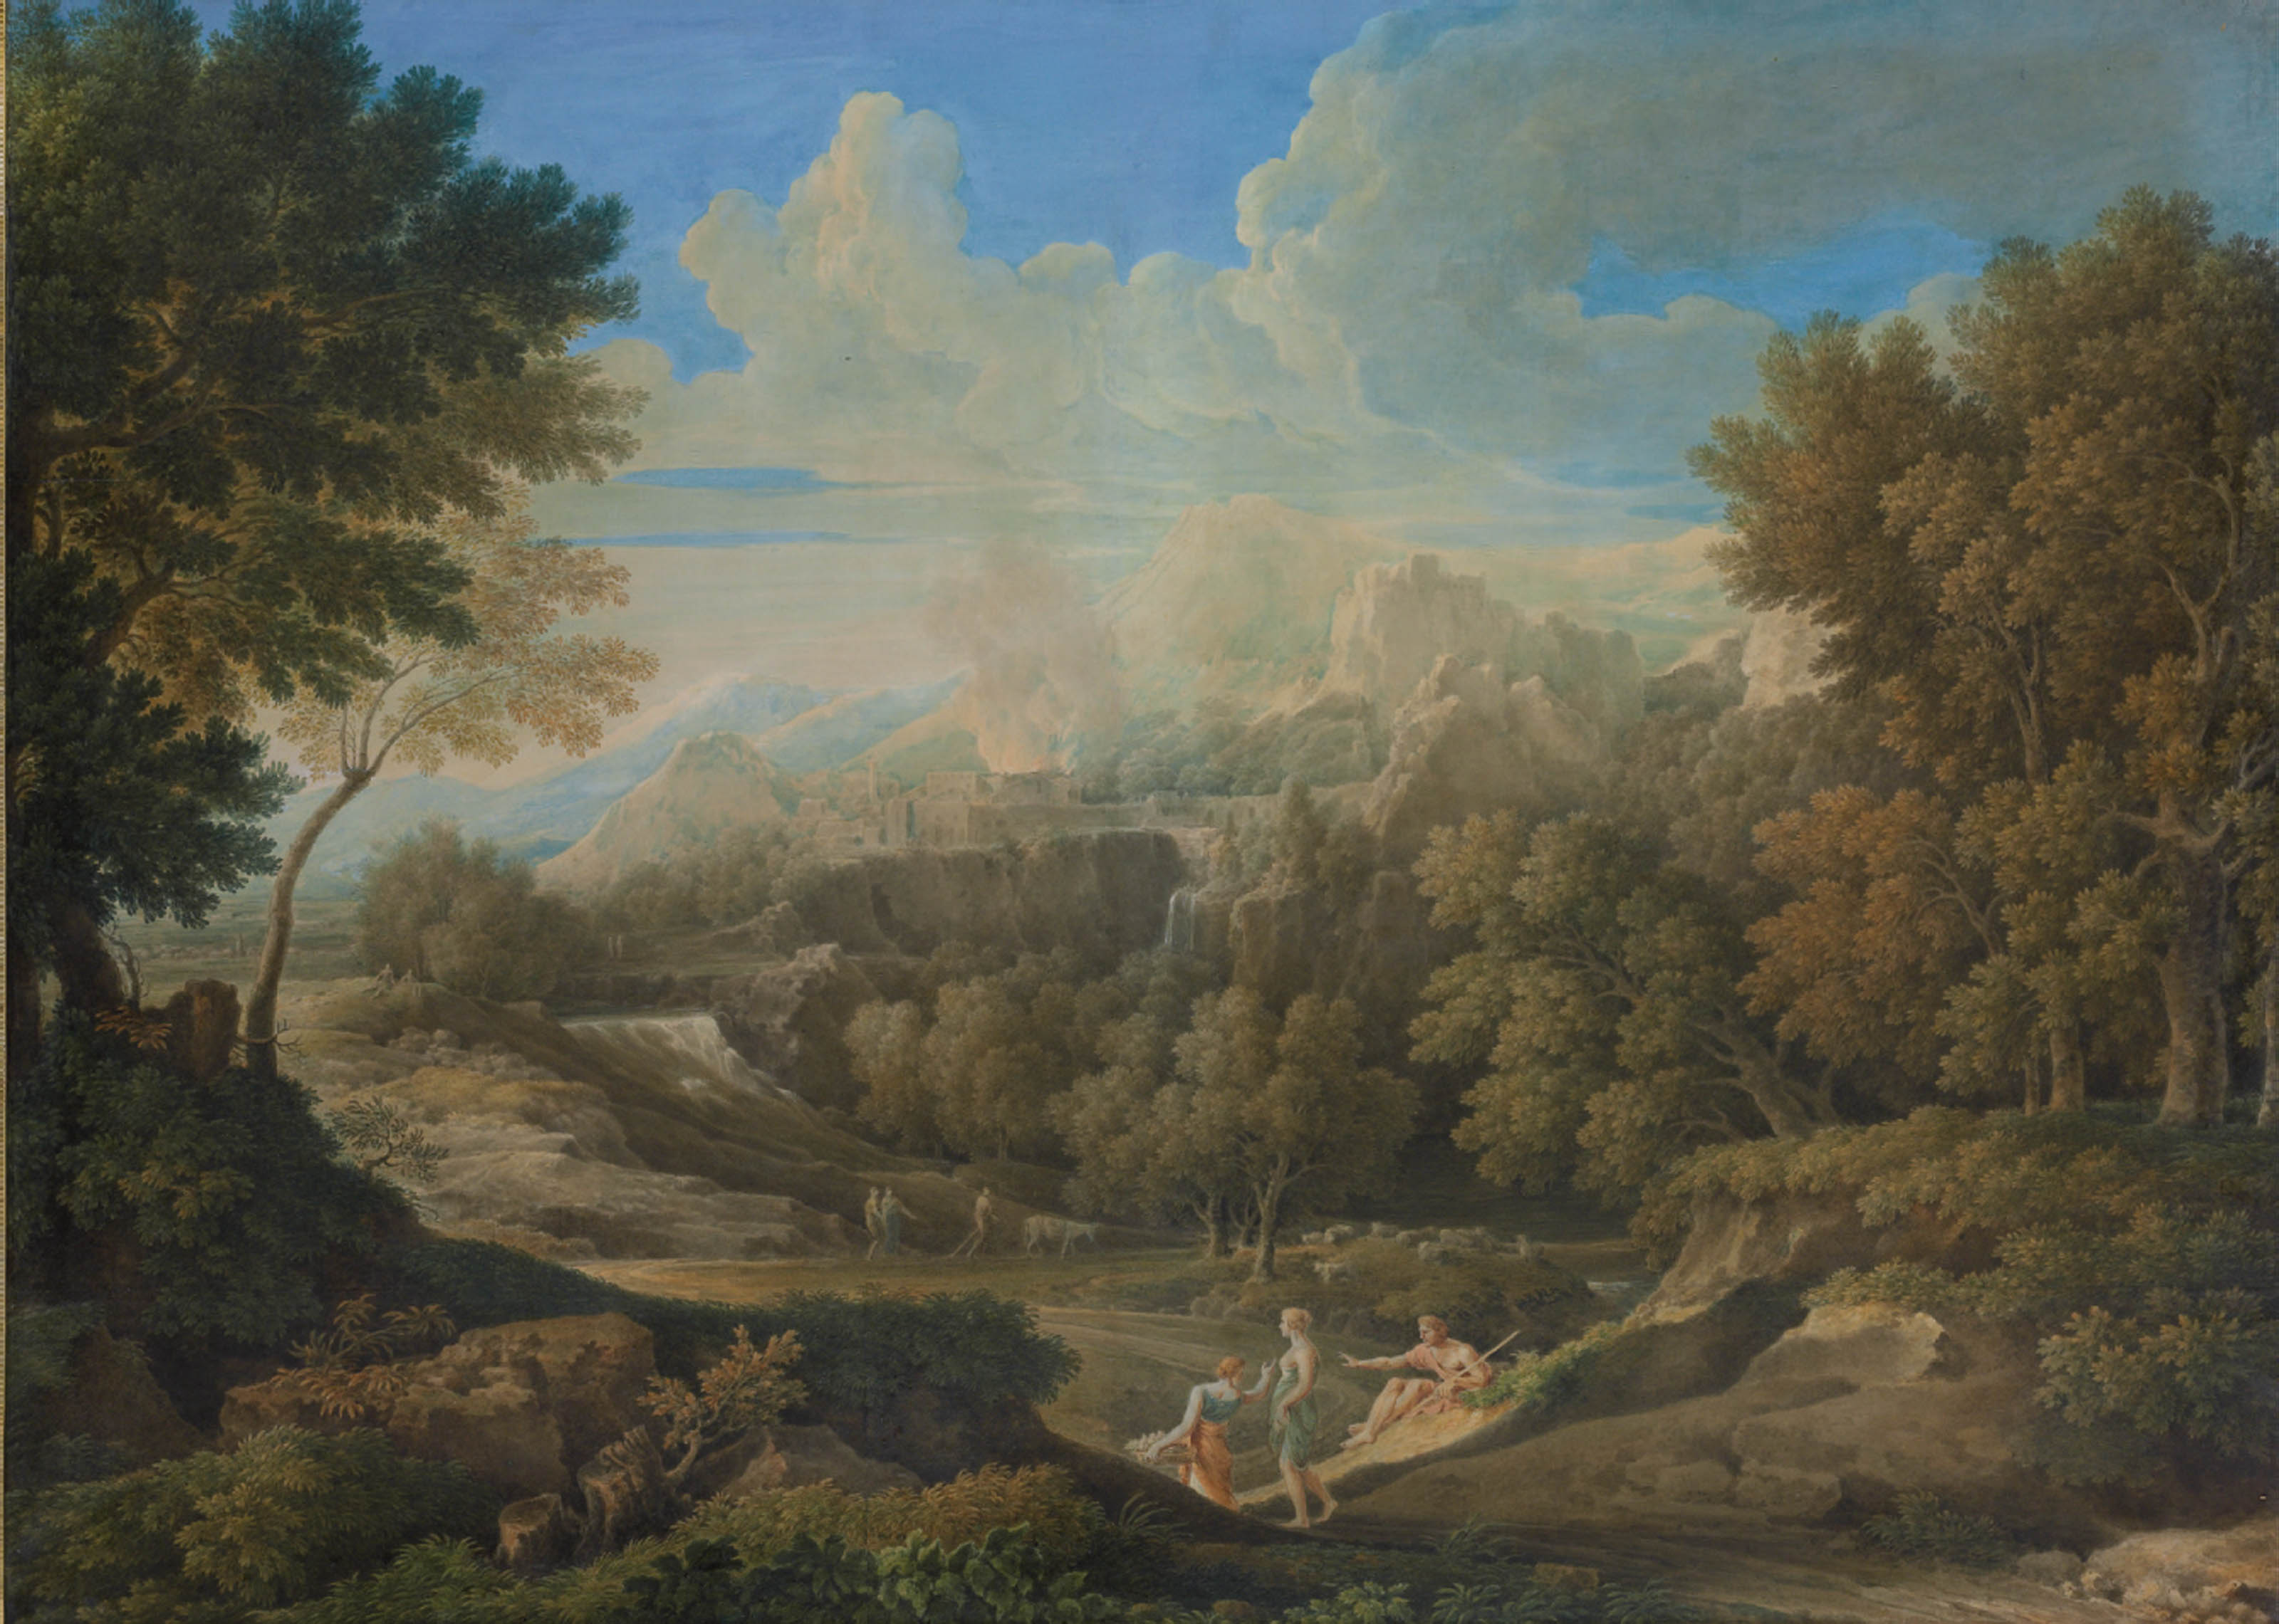 An Arcadian landscape with a burning city on a cliff beyond and shepherds resting in the foreground